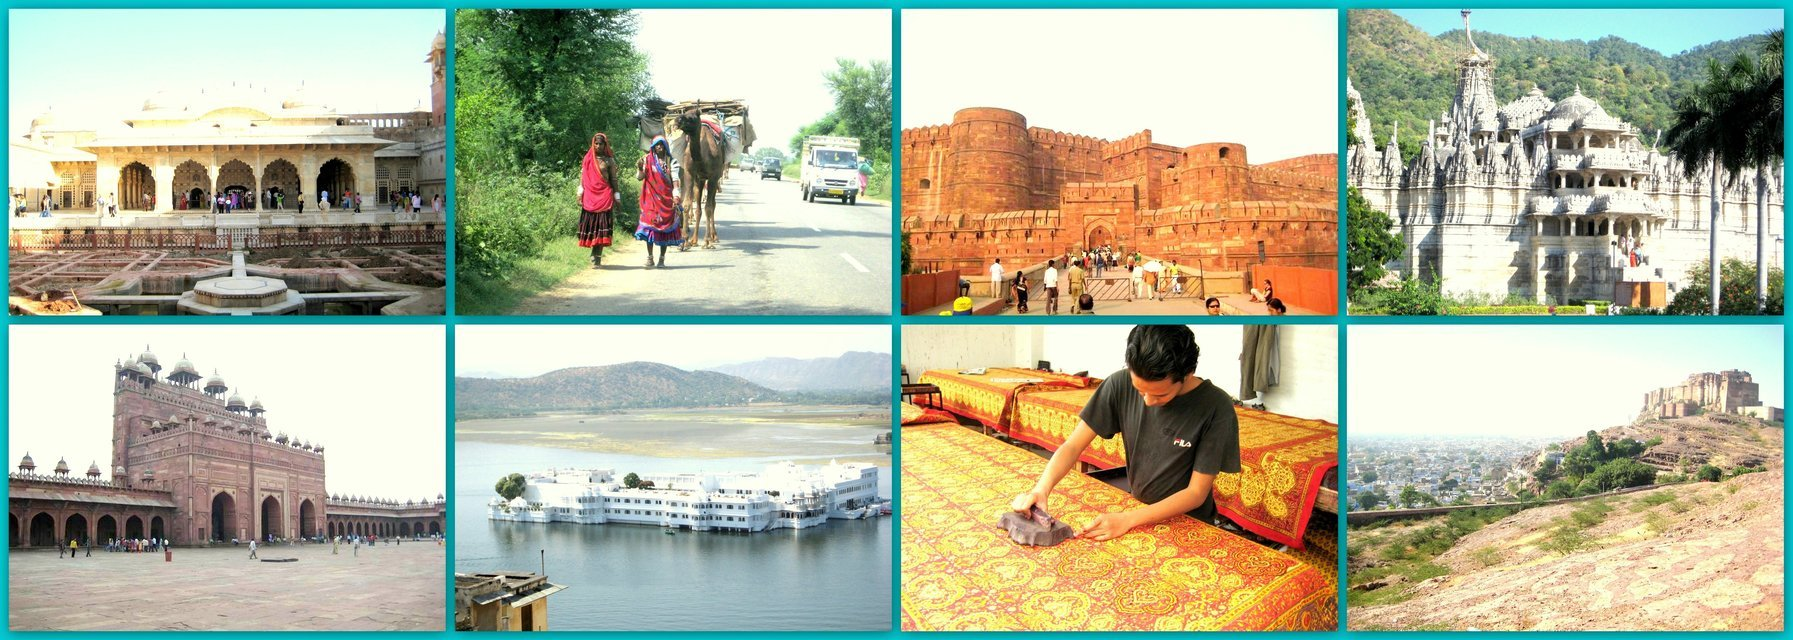 Rajasthan Fort & Palaces - Tour